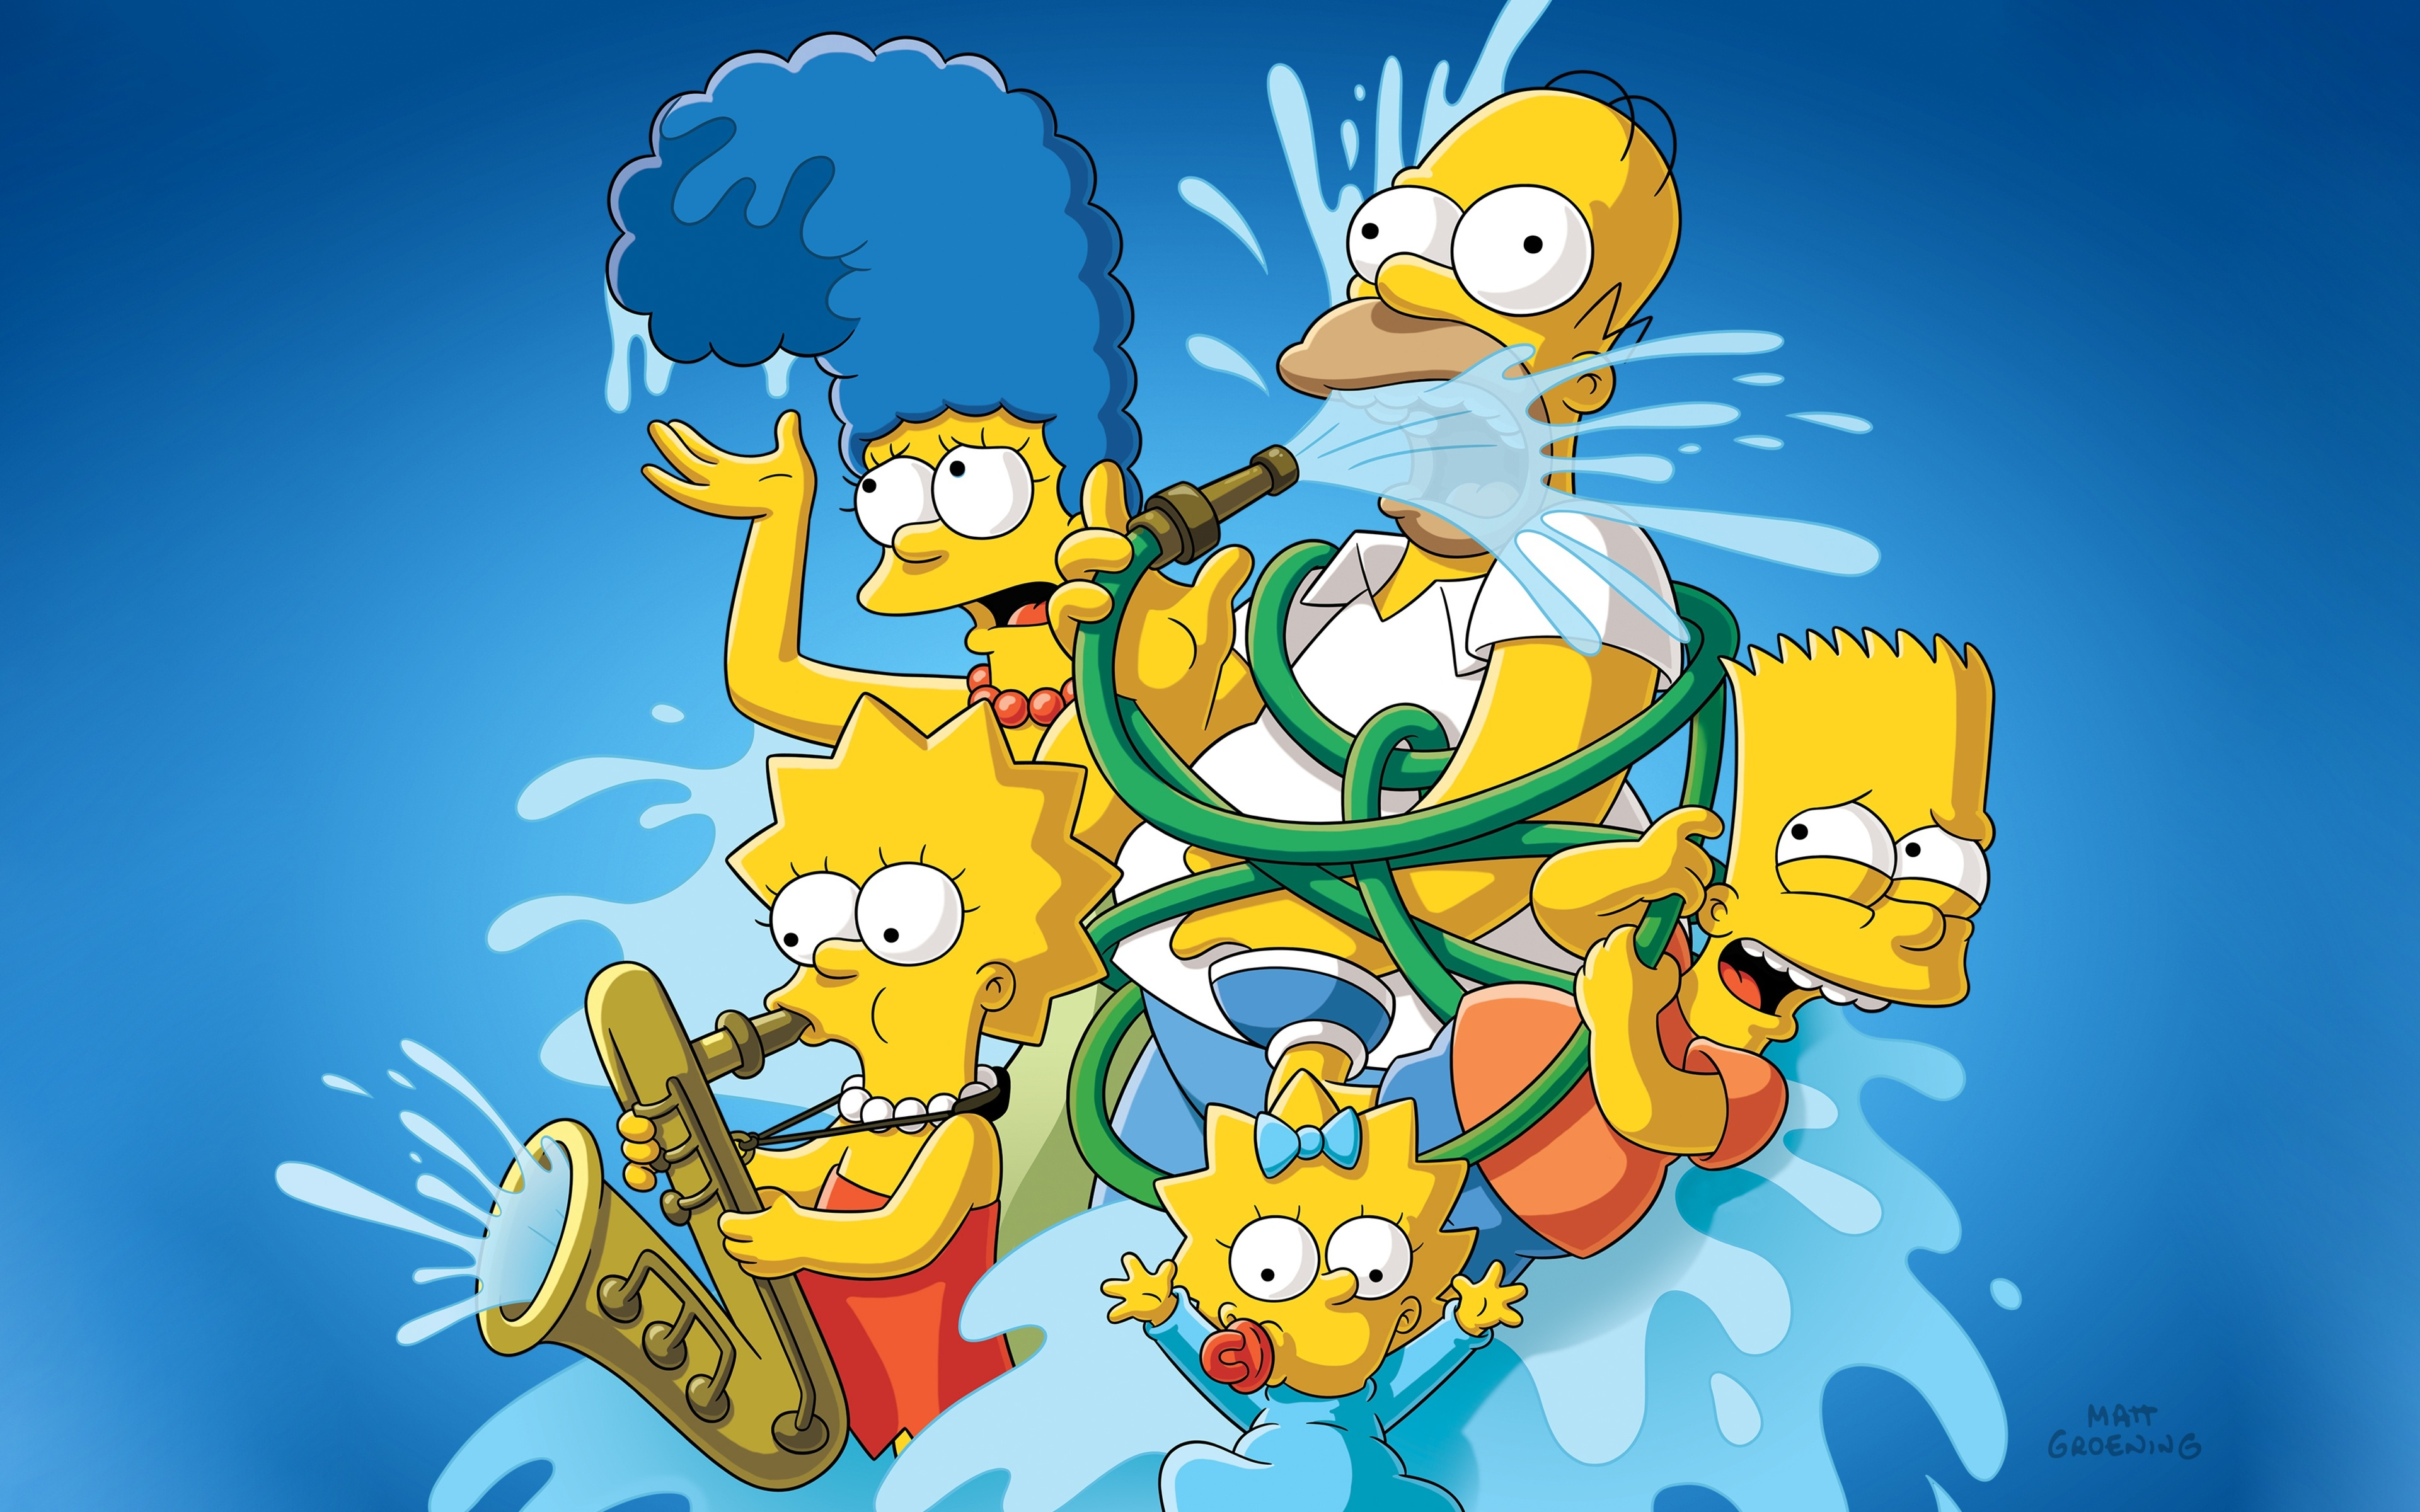 3840x2400 The Simpsons 4k 4k Hd 4k Wallpapers Images Backgrounds